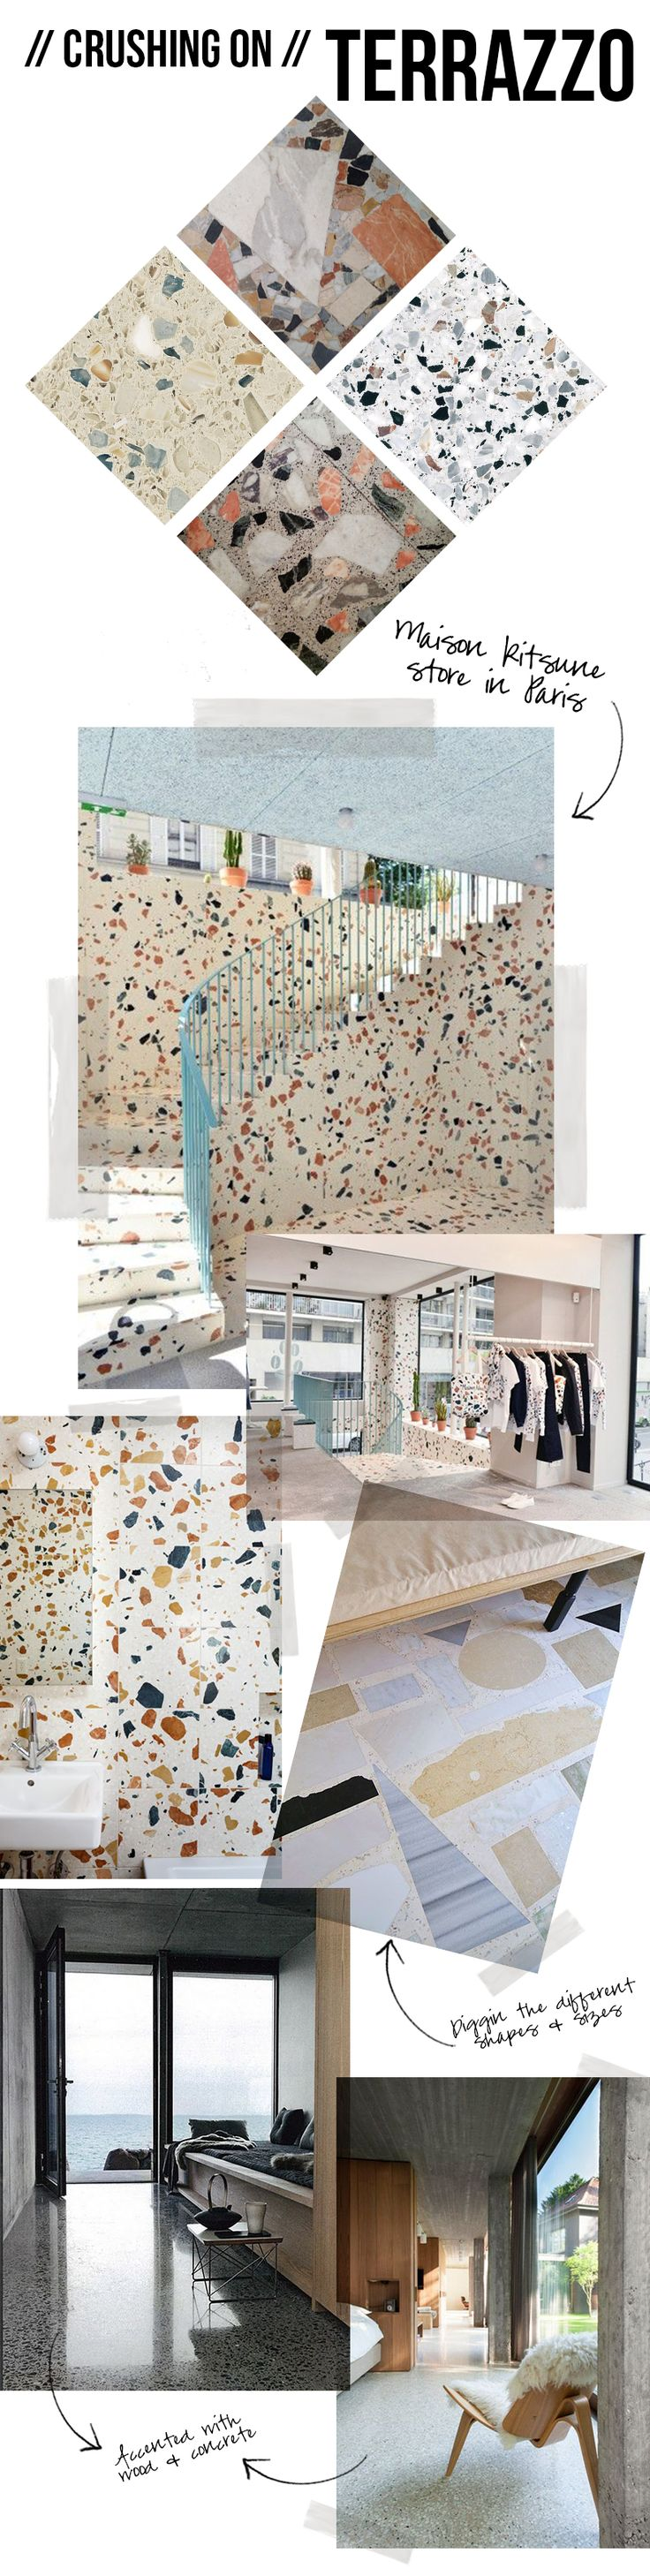 133 best terrazzo images on pinterest apartment design attic crushing on terrazzo terrazzo is very elaborate in design can be used for floors dailygadgetfo Images